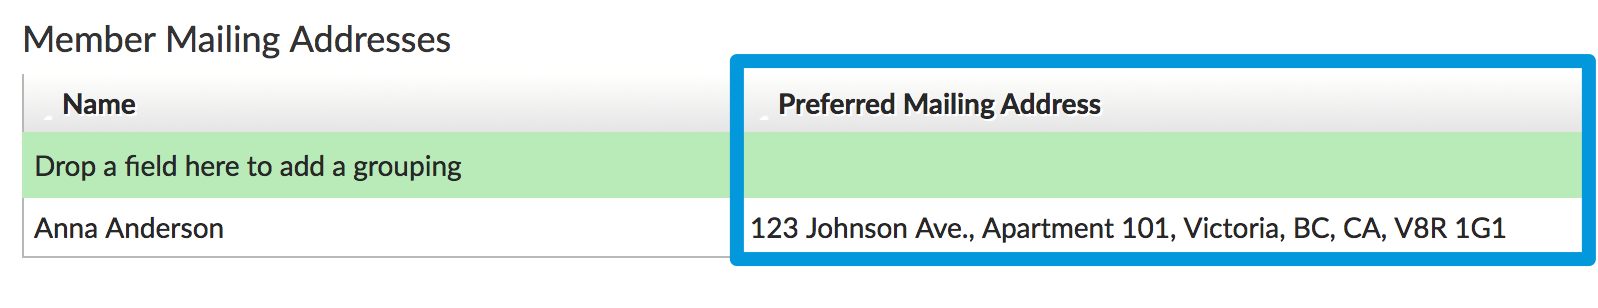 mailing_address.png